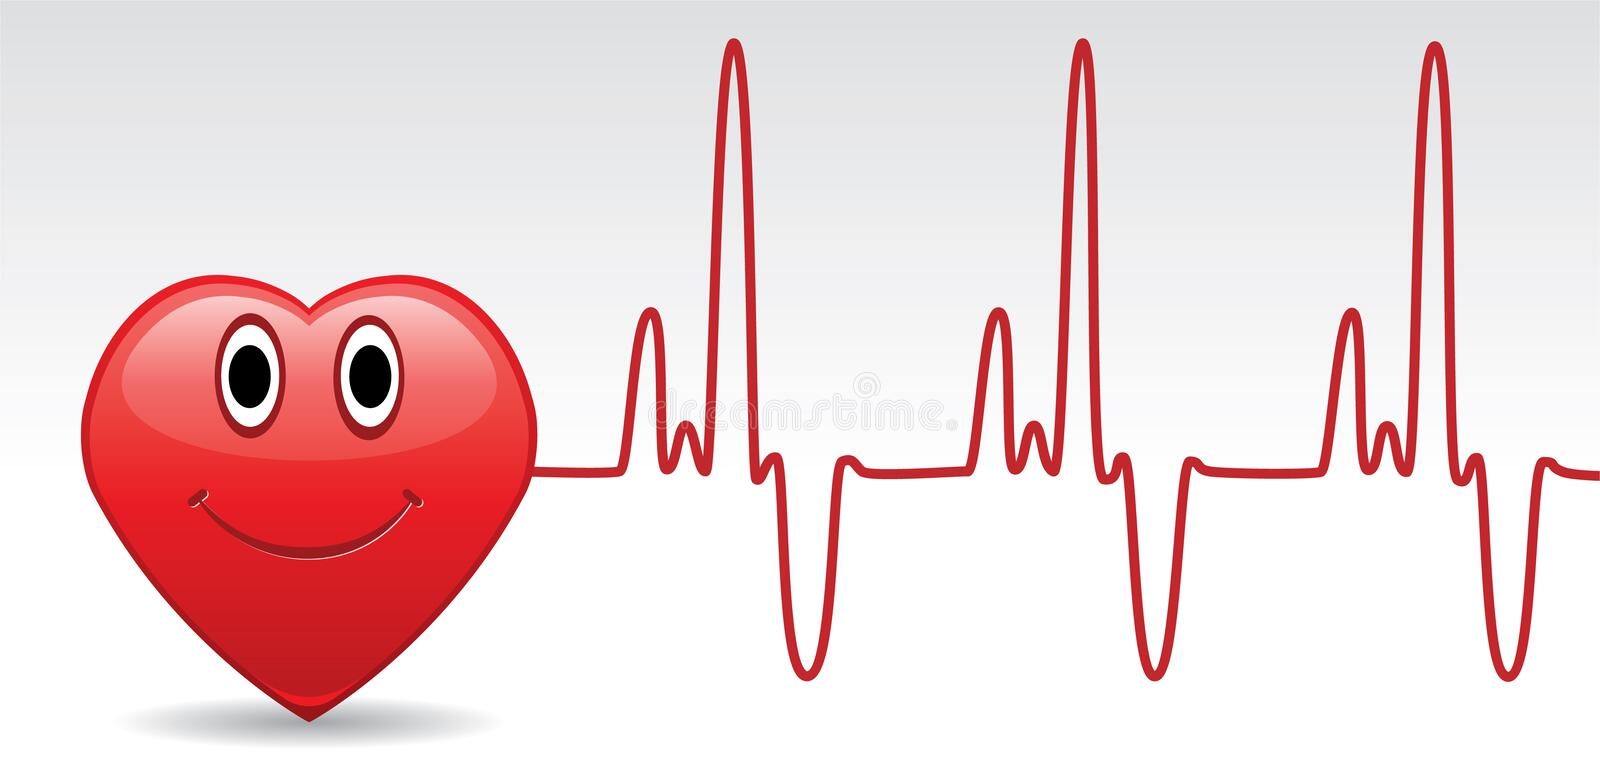 Heart And Heartbeat Stock Image